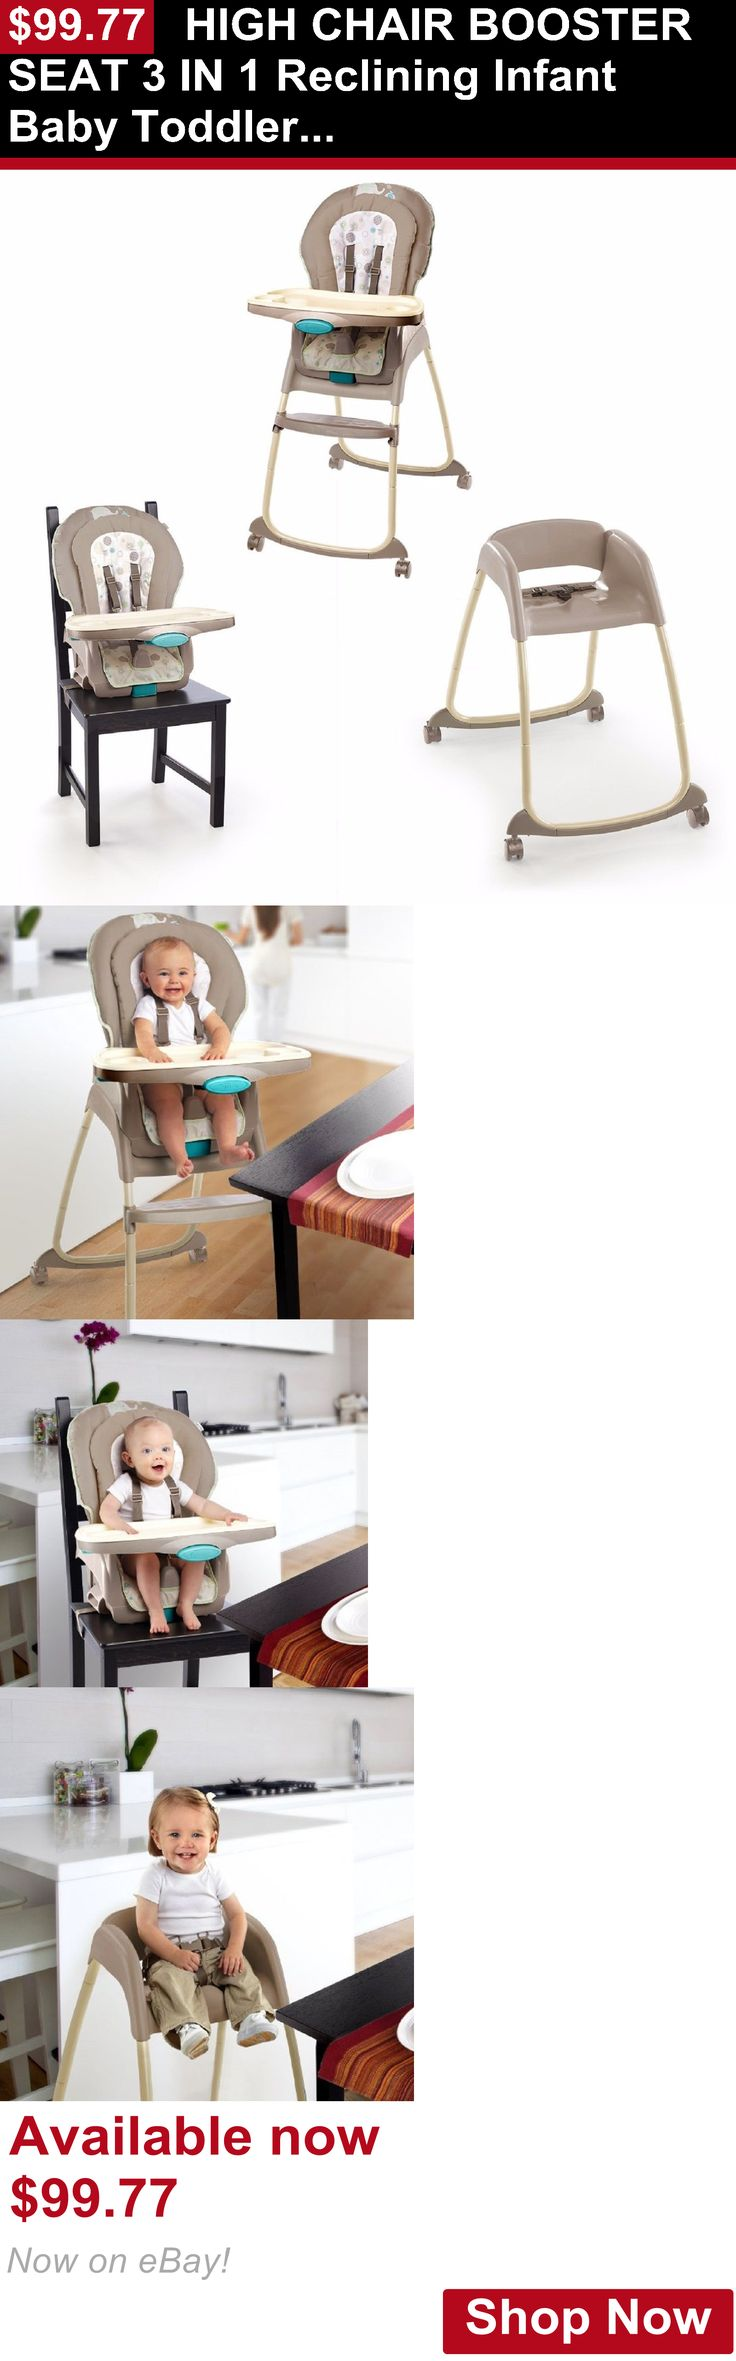 Baby High Chairs: High Chair Booster Seat 3 In 1 Reclining Infant Baby Toddler Feeding Unisex New BUY IT NOW ONLY: $99.77